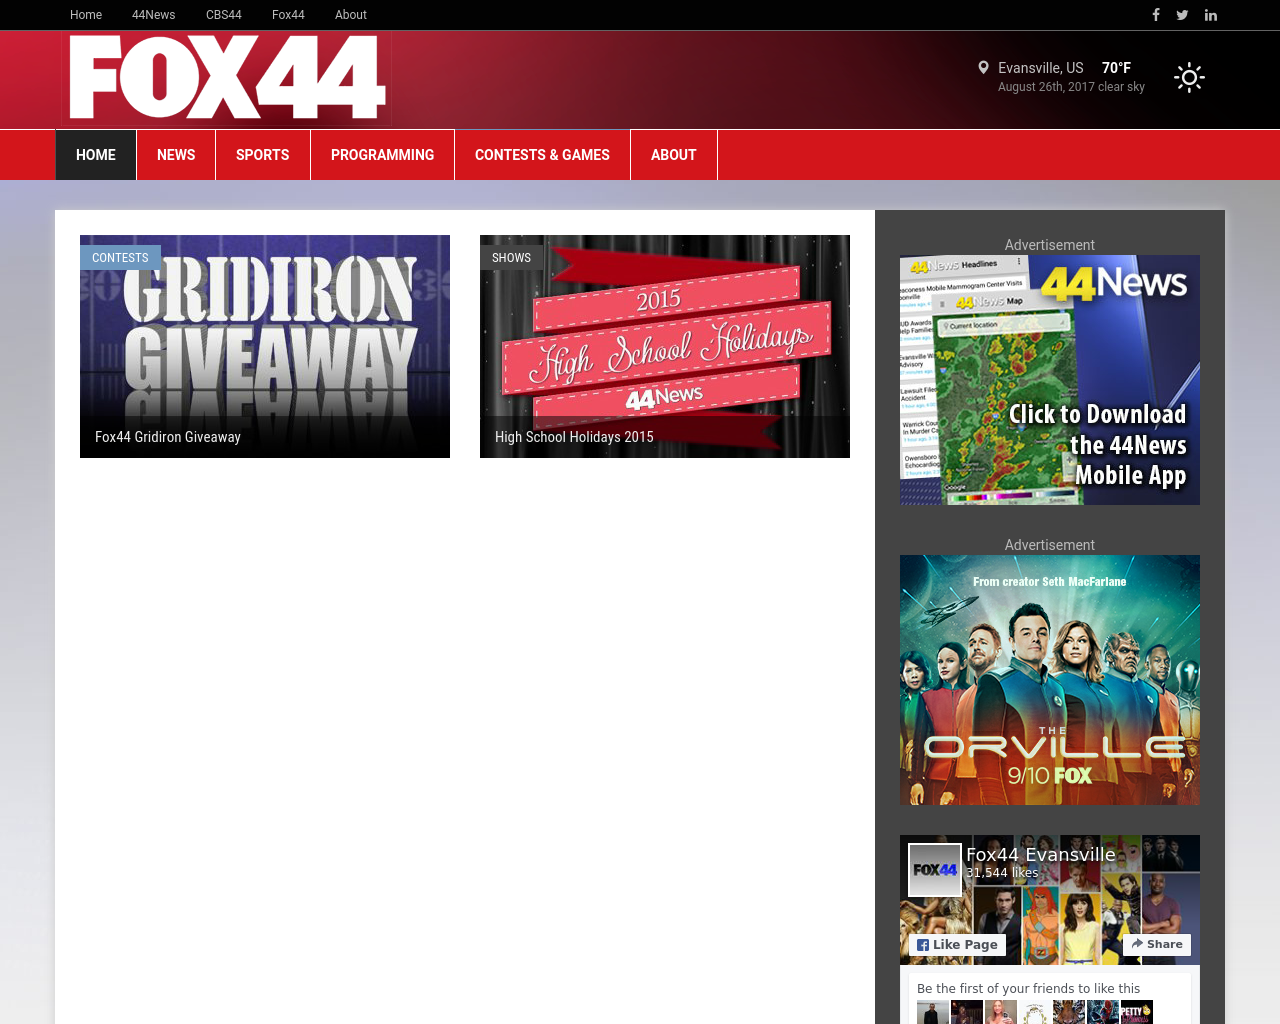 Fox44-WEVV-Evansville-Advertising-Reviews-Pricing